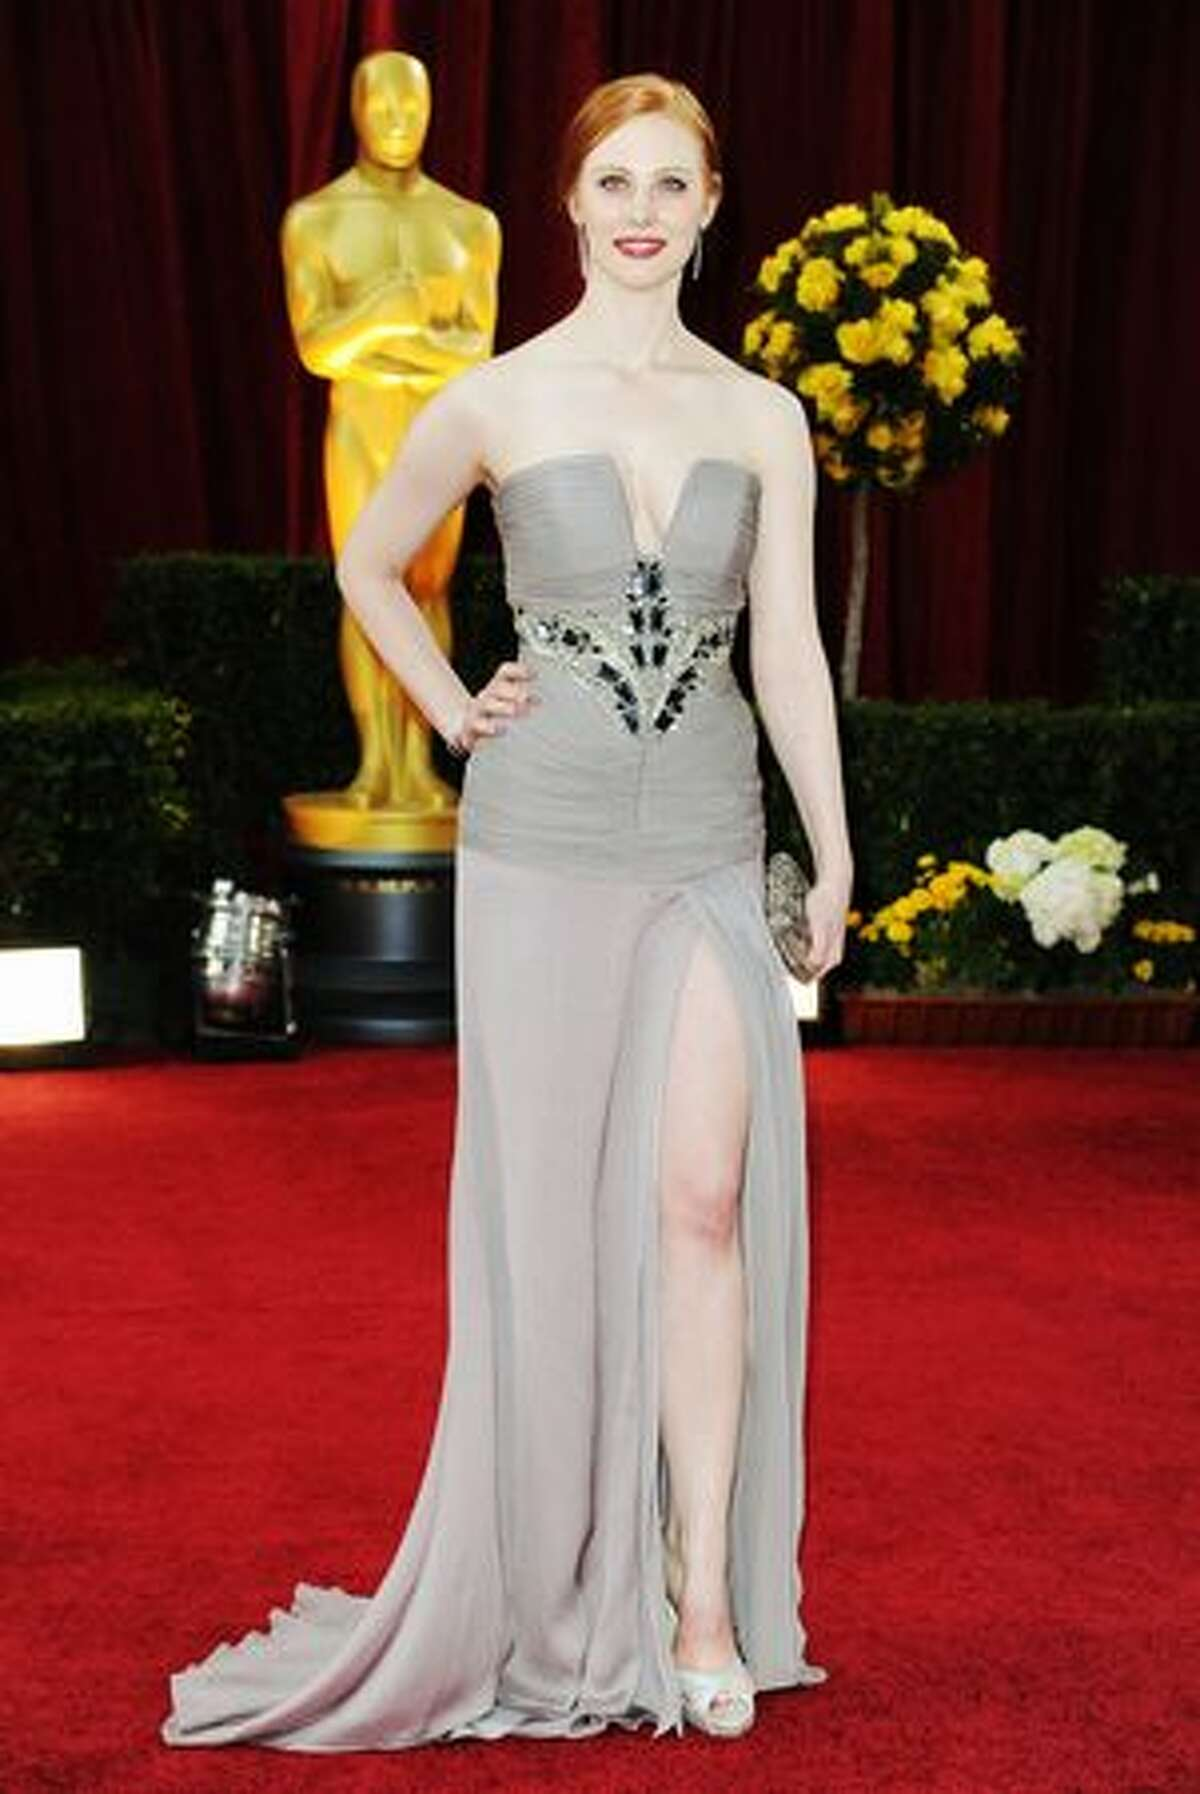 Actress Deborah Ann Woll arrives at the 82nd Annual Academy Awards held at Kodak Theatre in Hollywood, California.